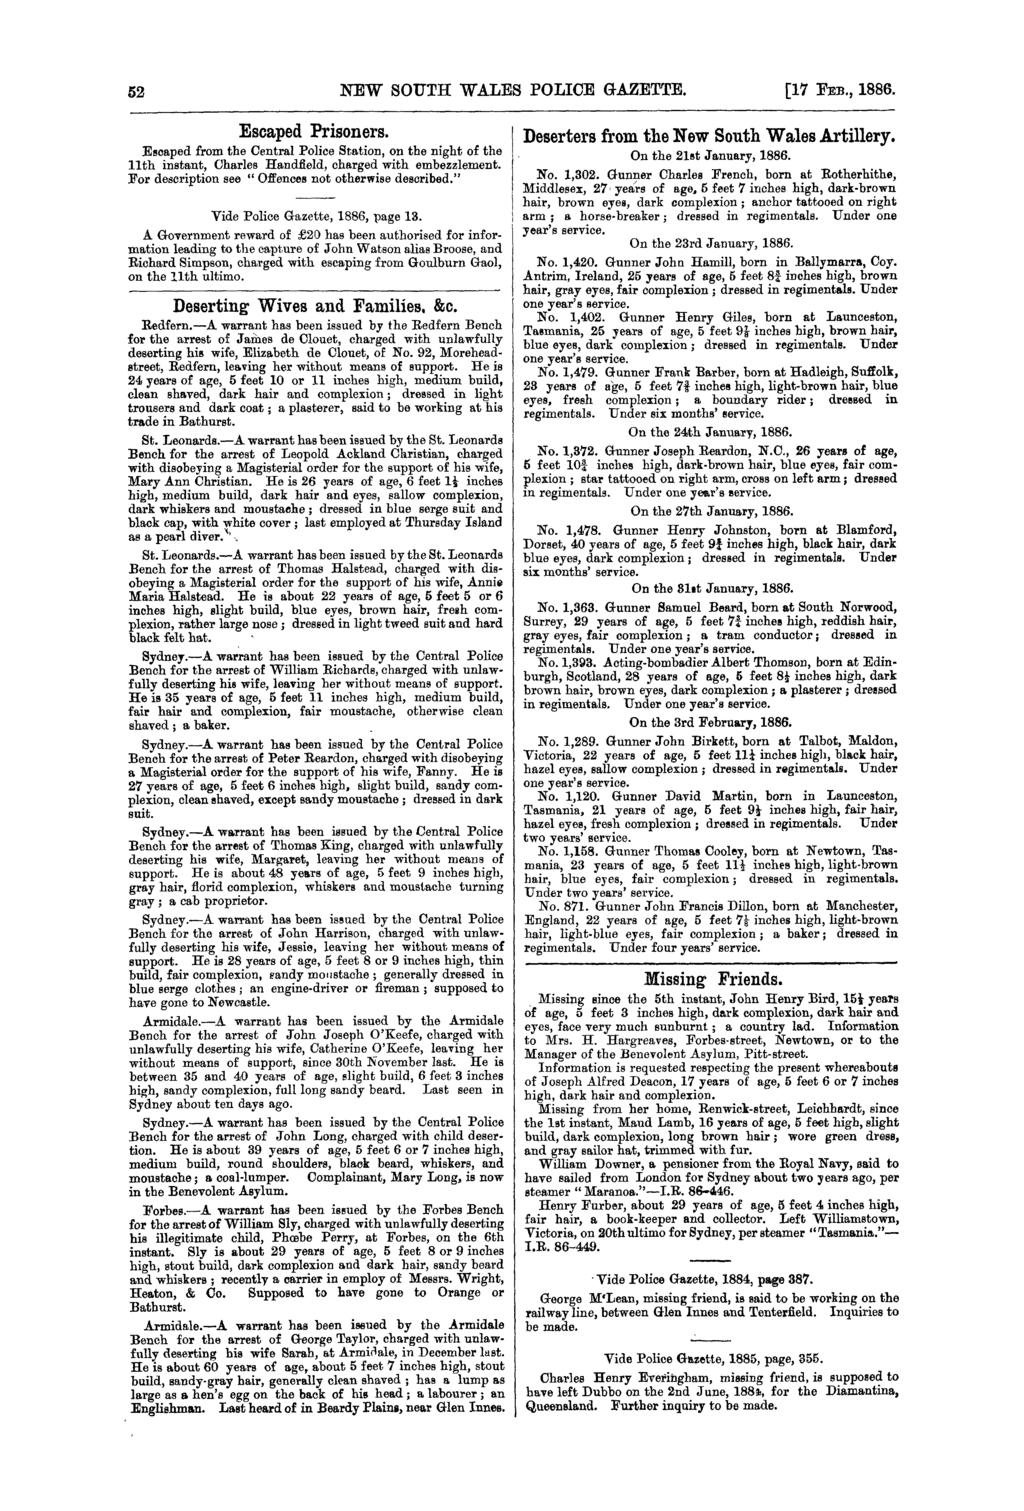 New South Wales Police Gazette Pdf Designed By John Broskie Made In Usa 52 17 Fm 1886 Escaped Prisoners